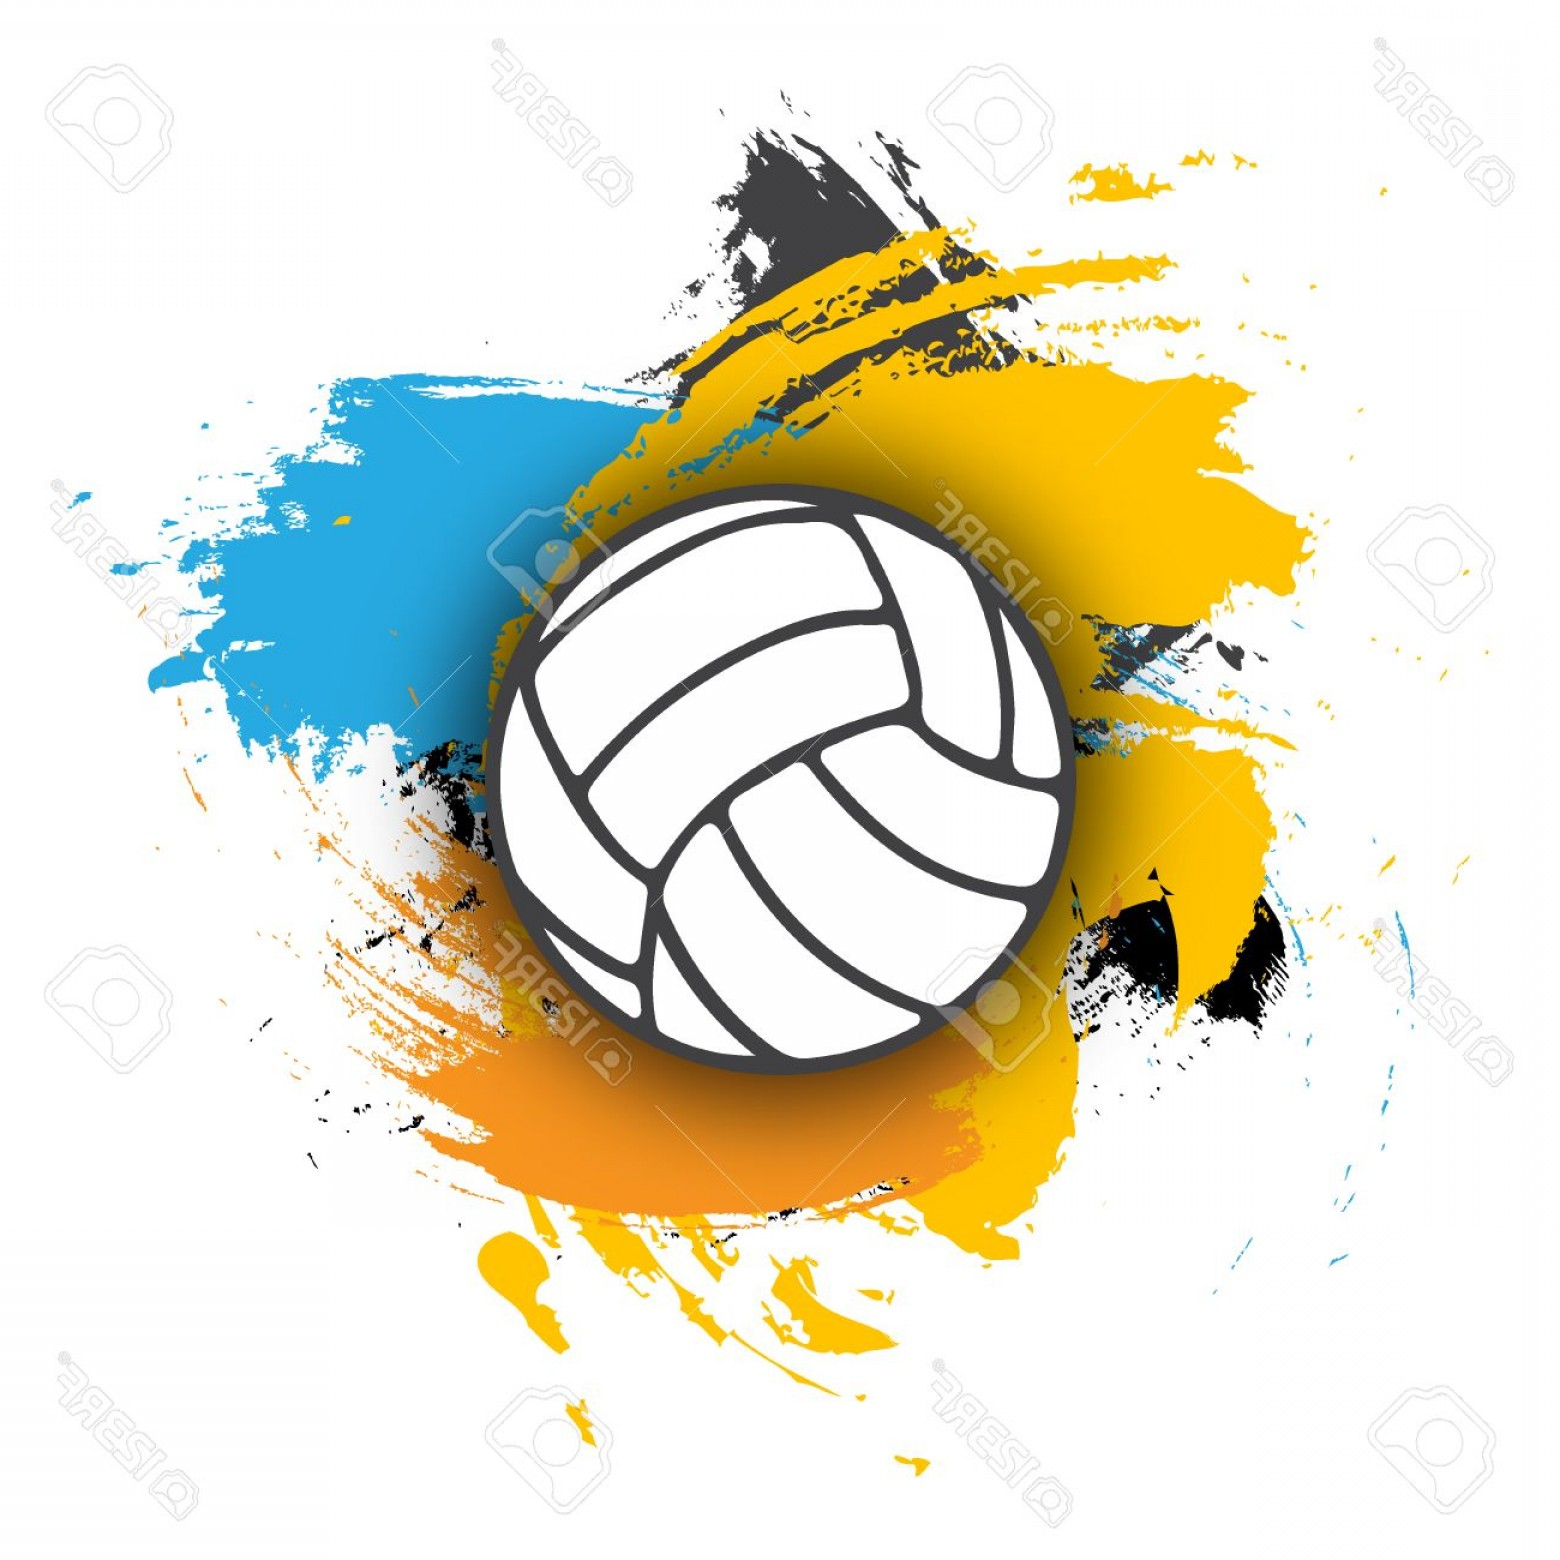 Volleyball Vector Logo: Photostock Vector Vector Volleyball Logo On The Background Of Multi Colored Brushstrokes Volleyball Ball For Banner Po